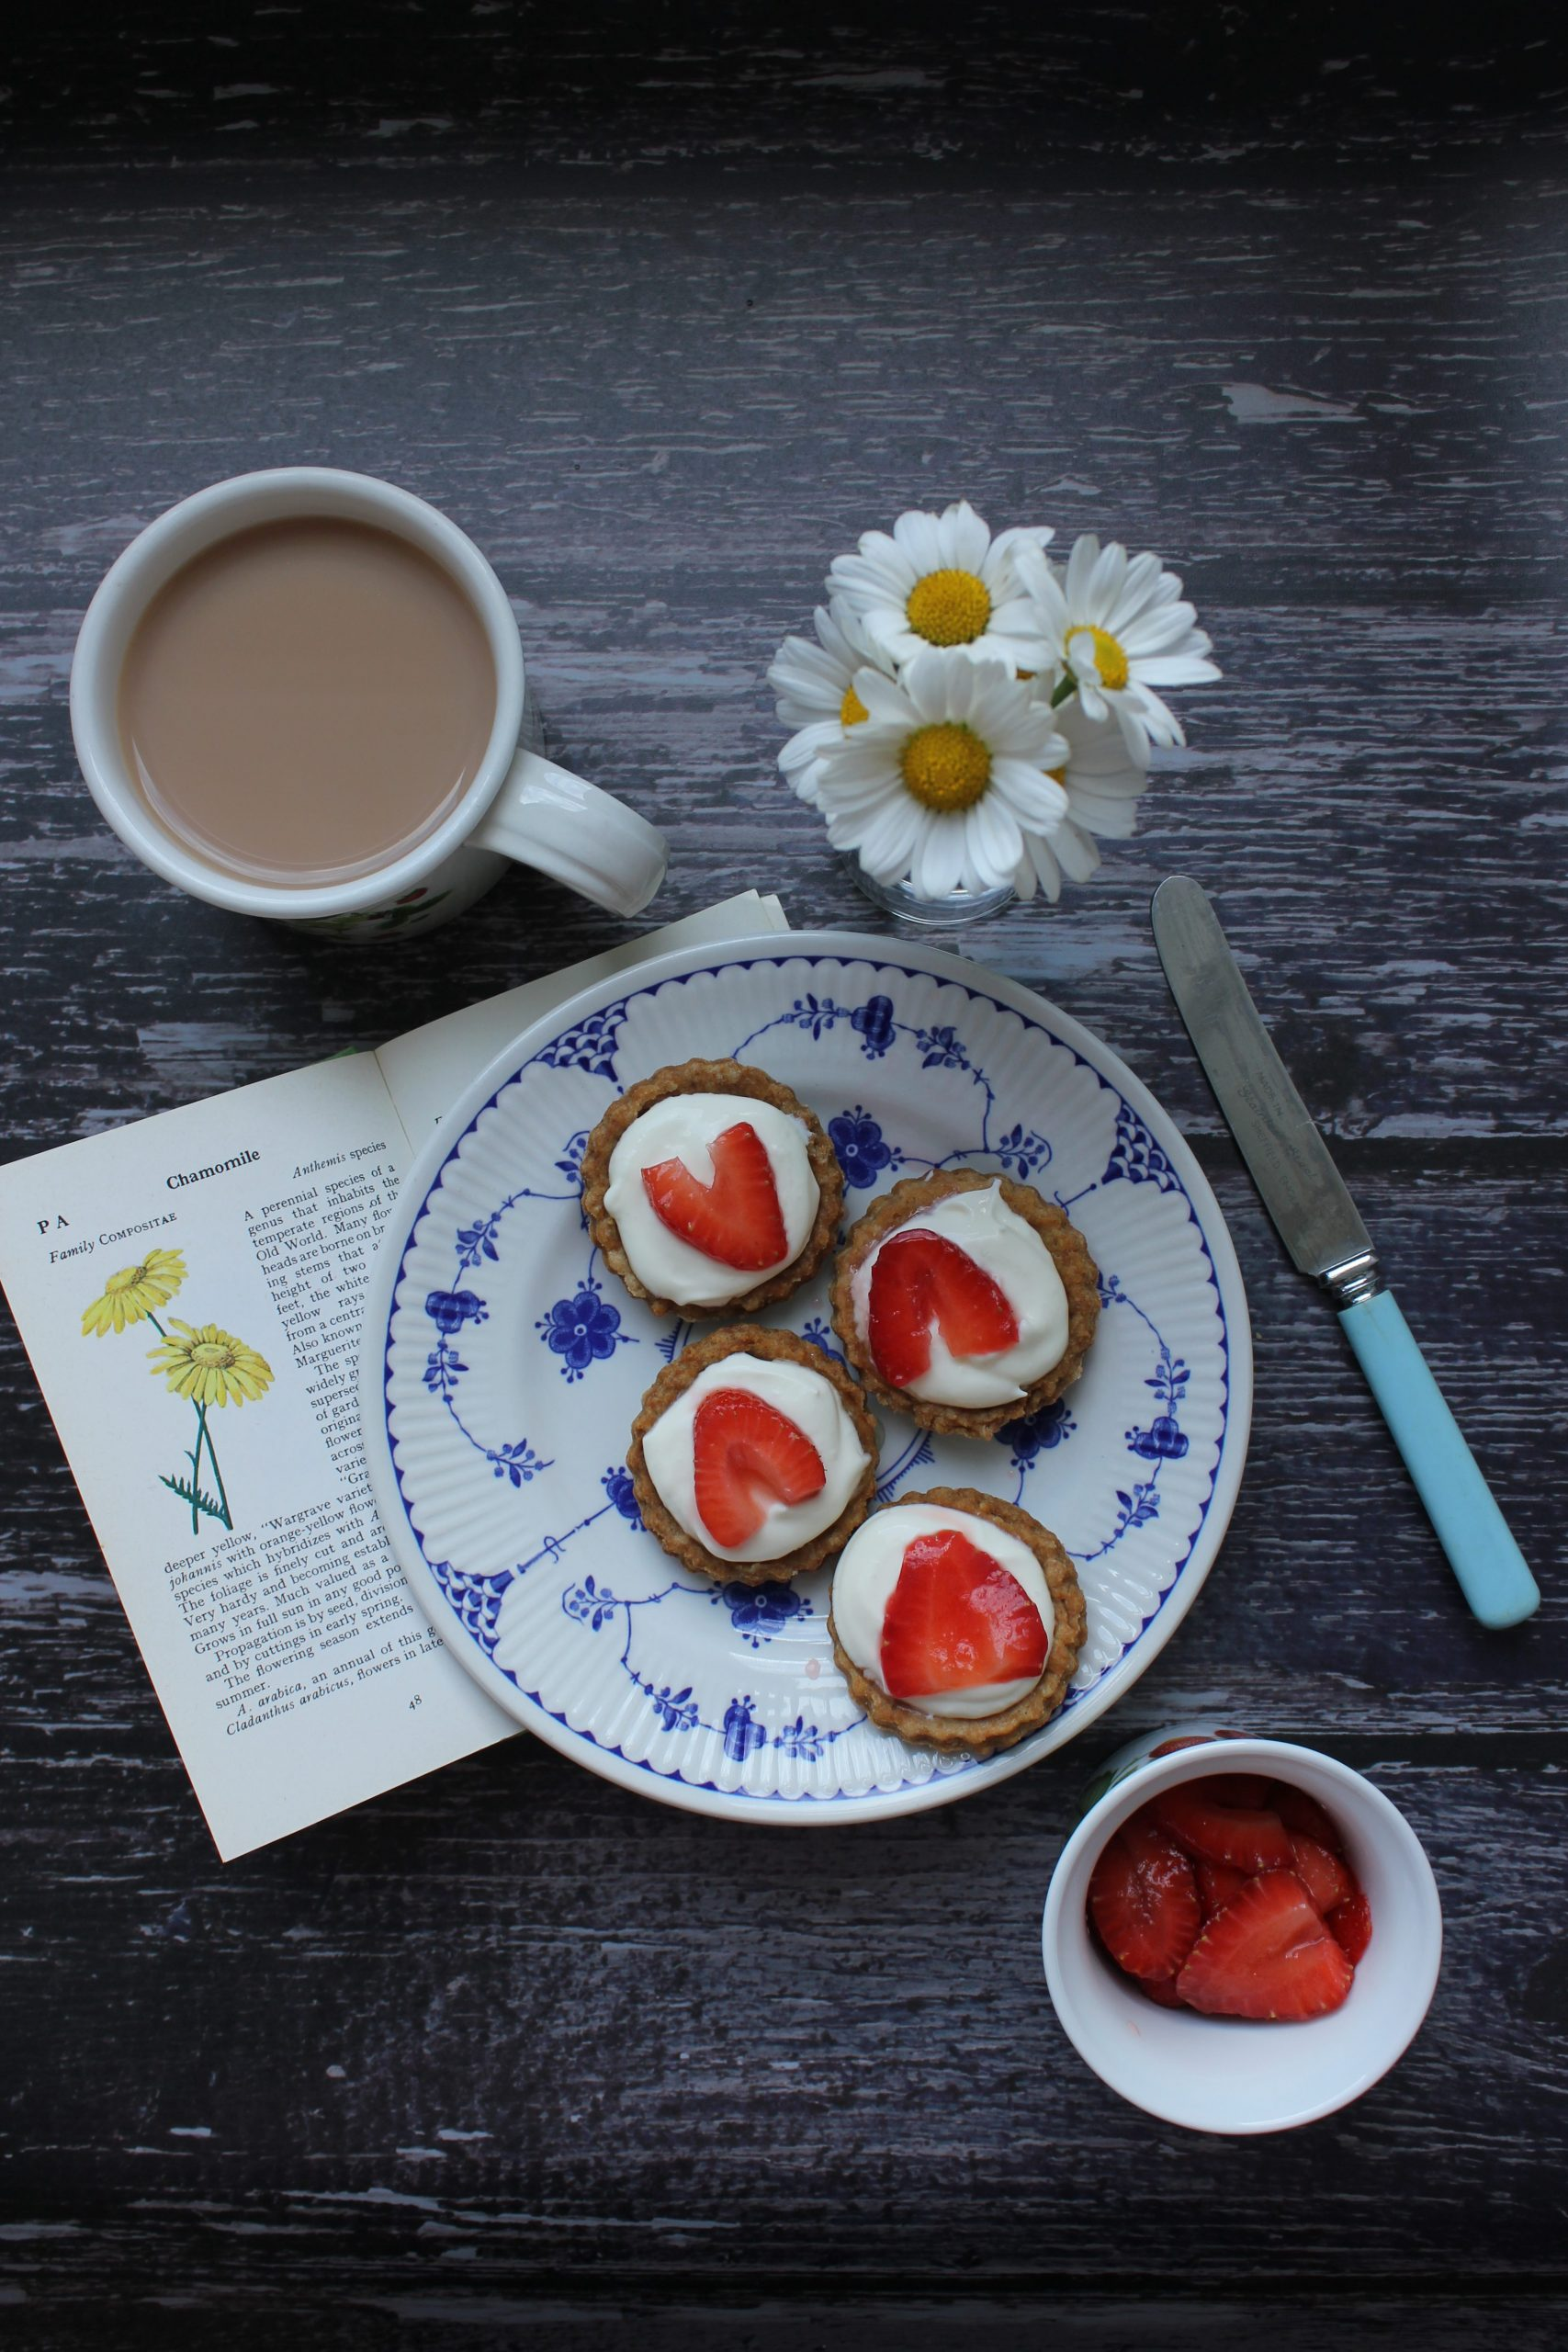 strawberry and elderflower tarts with brown butter pastry